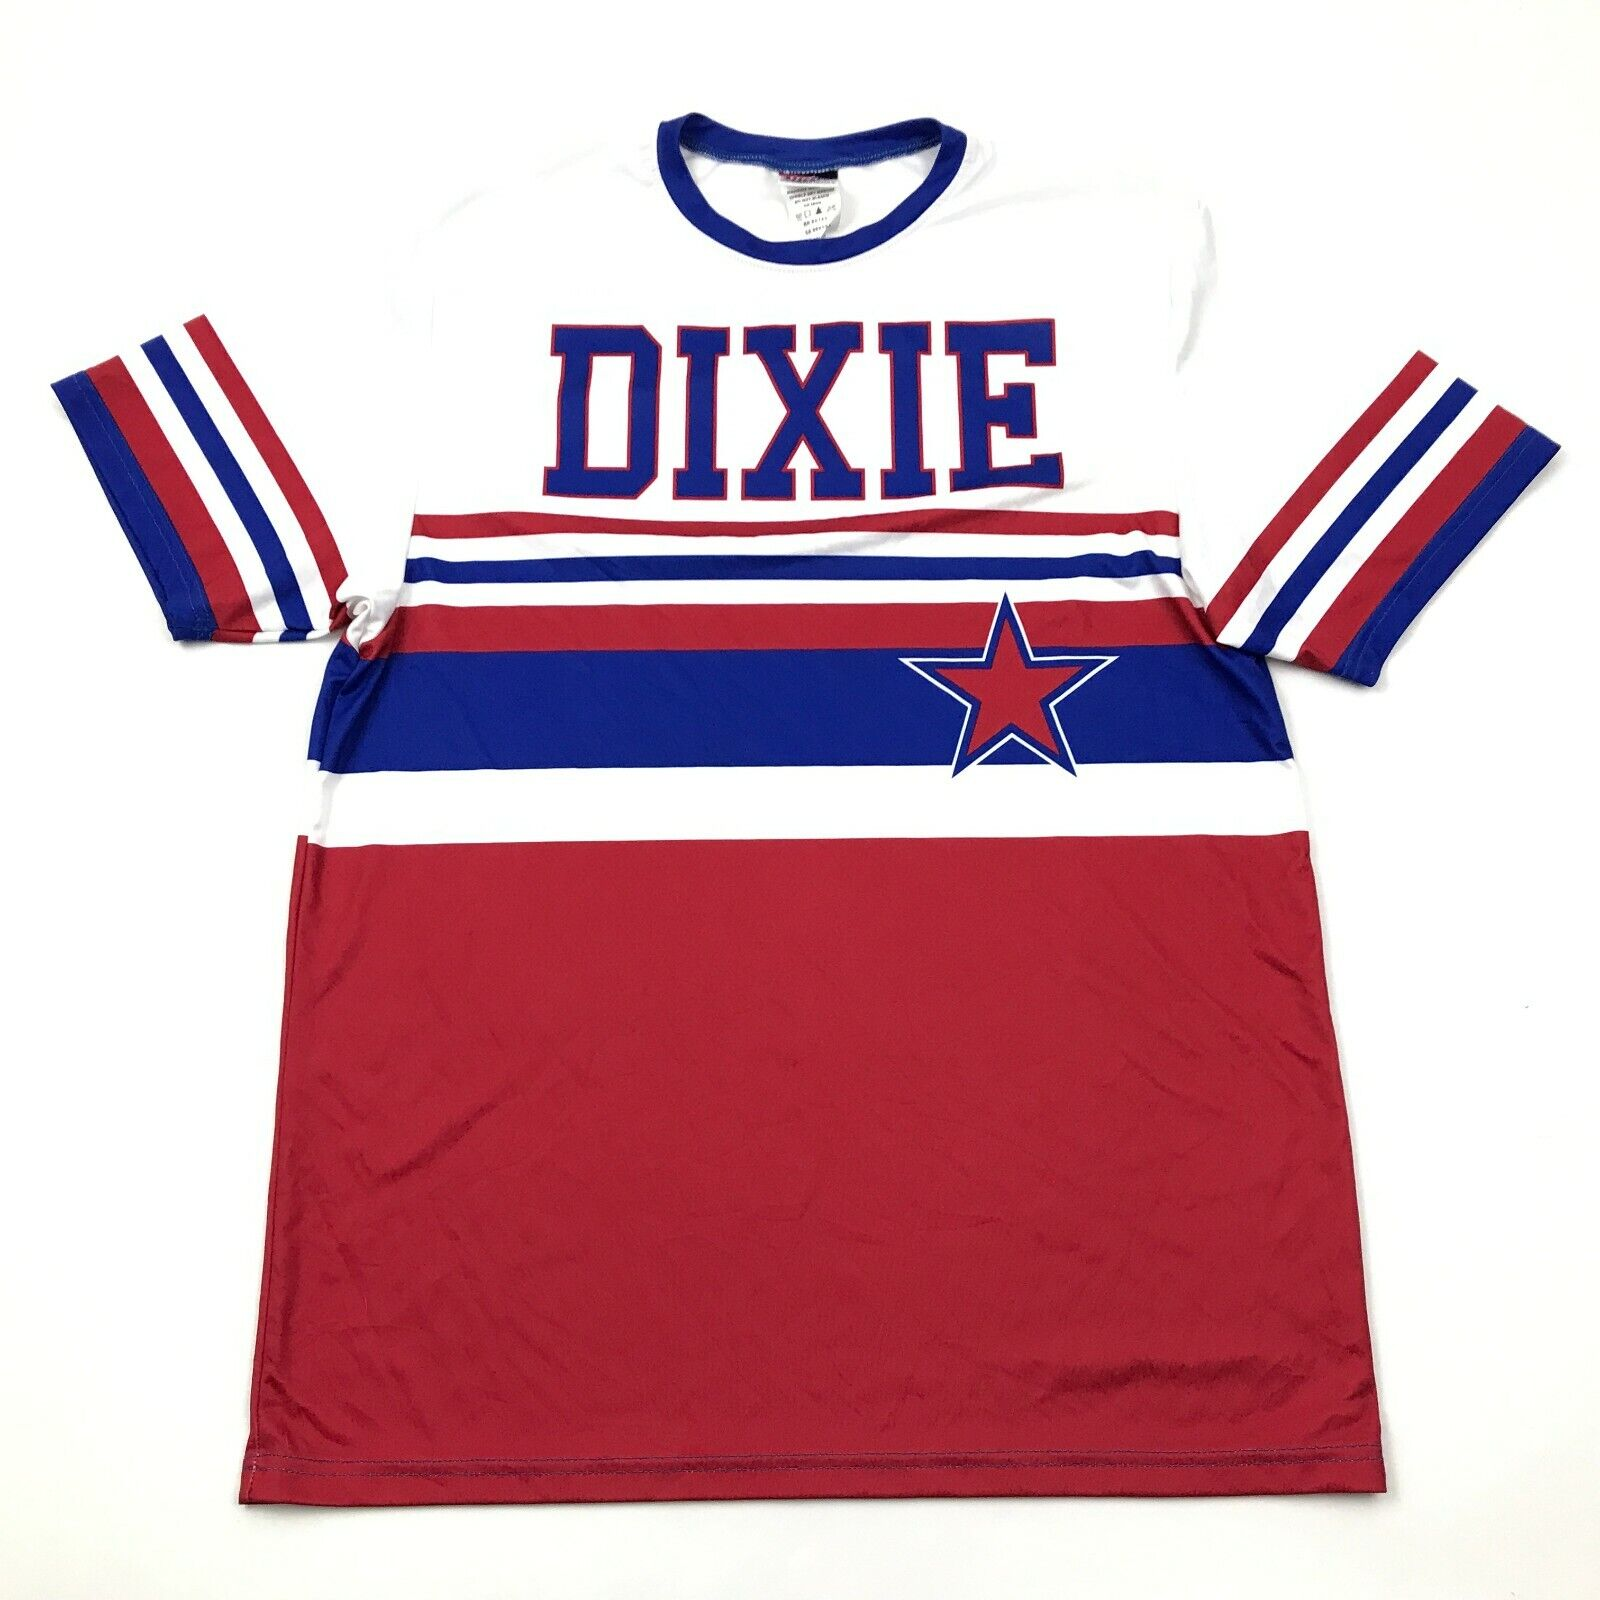 DIXIE Dry Fit Shirt Size Medium M Adult Red Blue White Short Sleeve Tee Williams